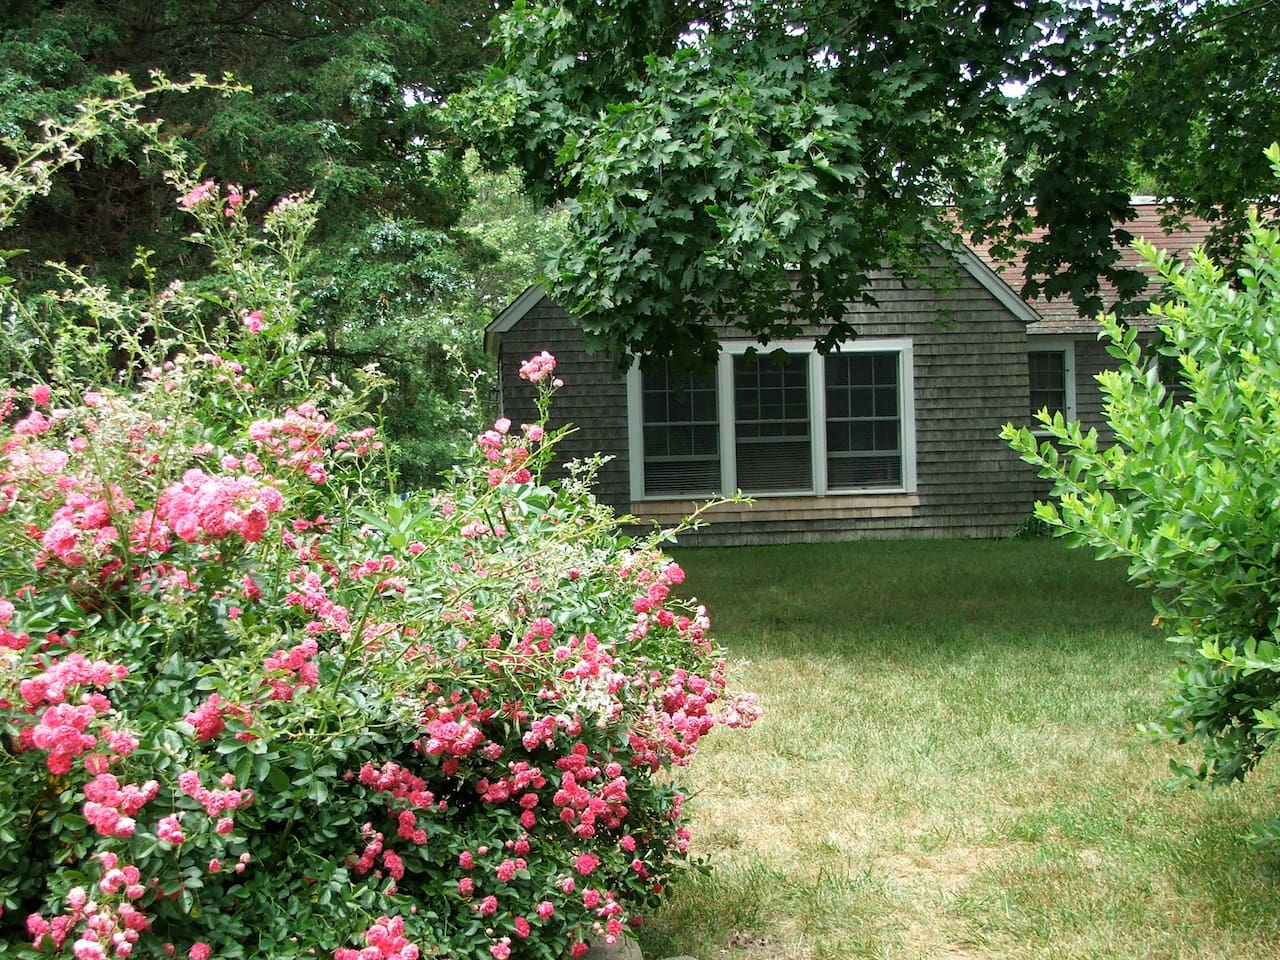 Front view in July when roses bloom